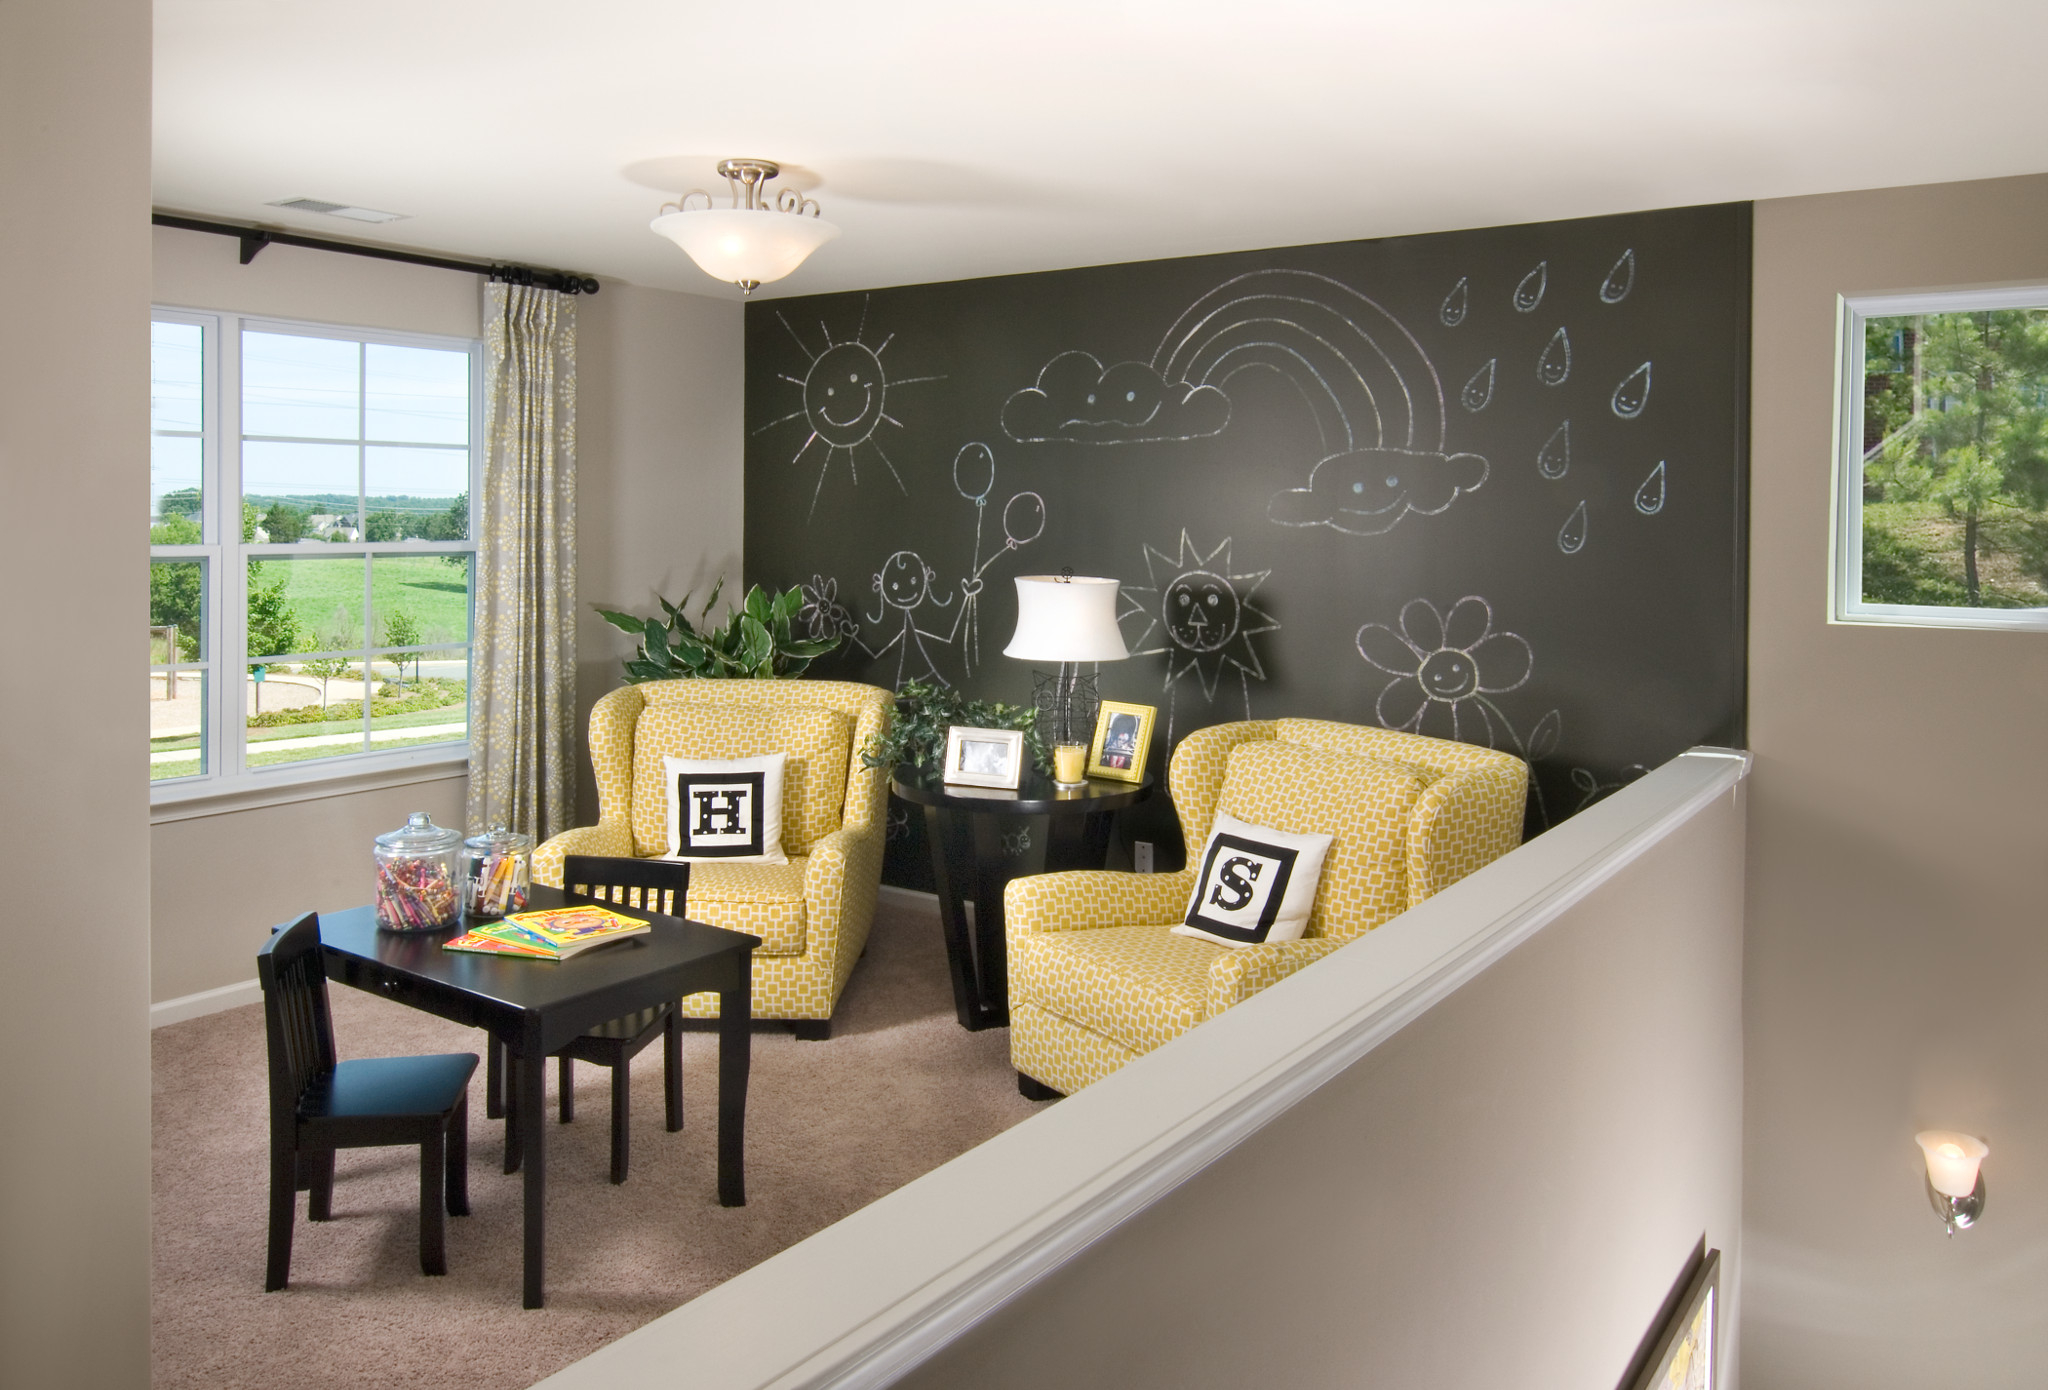 Loft with chalkboard accent wall